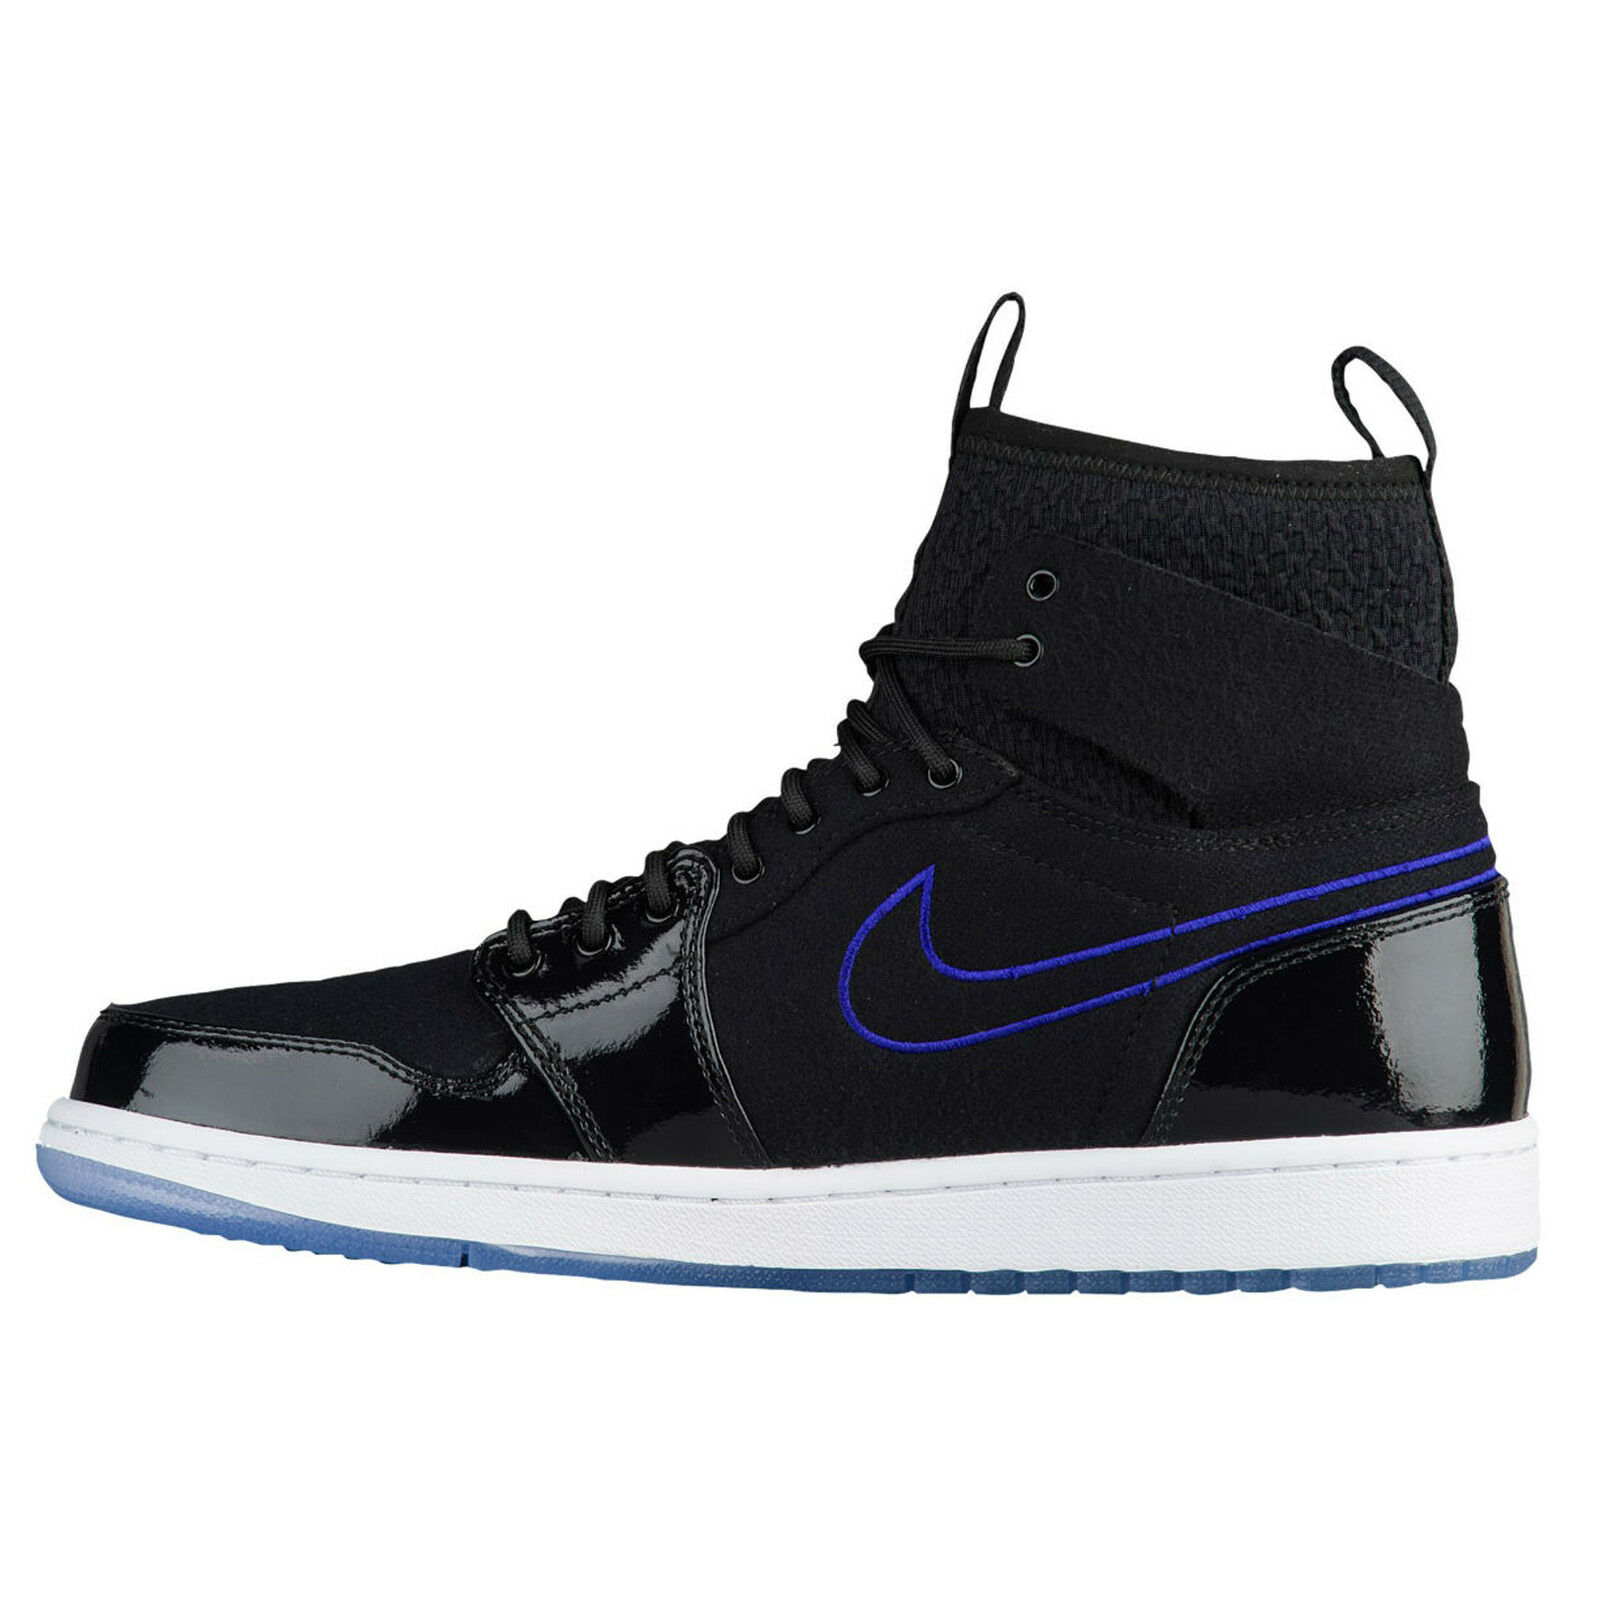 NIKE Air Jordan 1 Retro Ultra High 844700-002 Basketballschuh Sportschuh